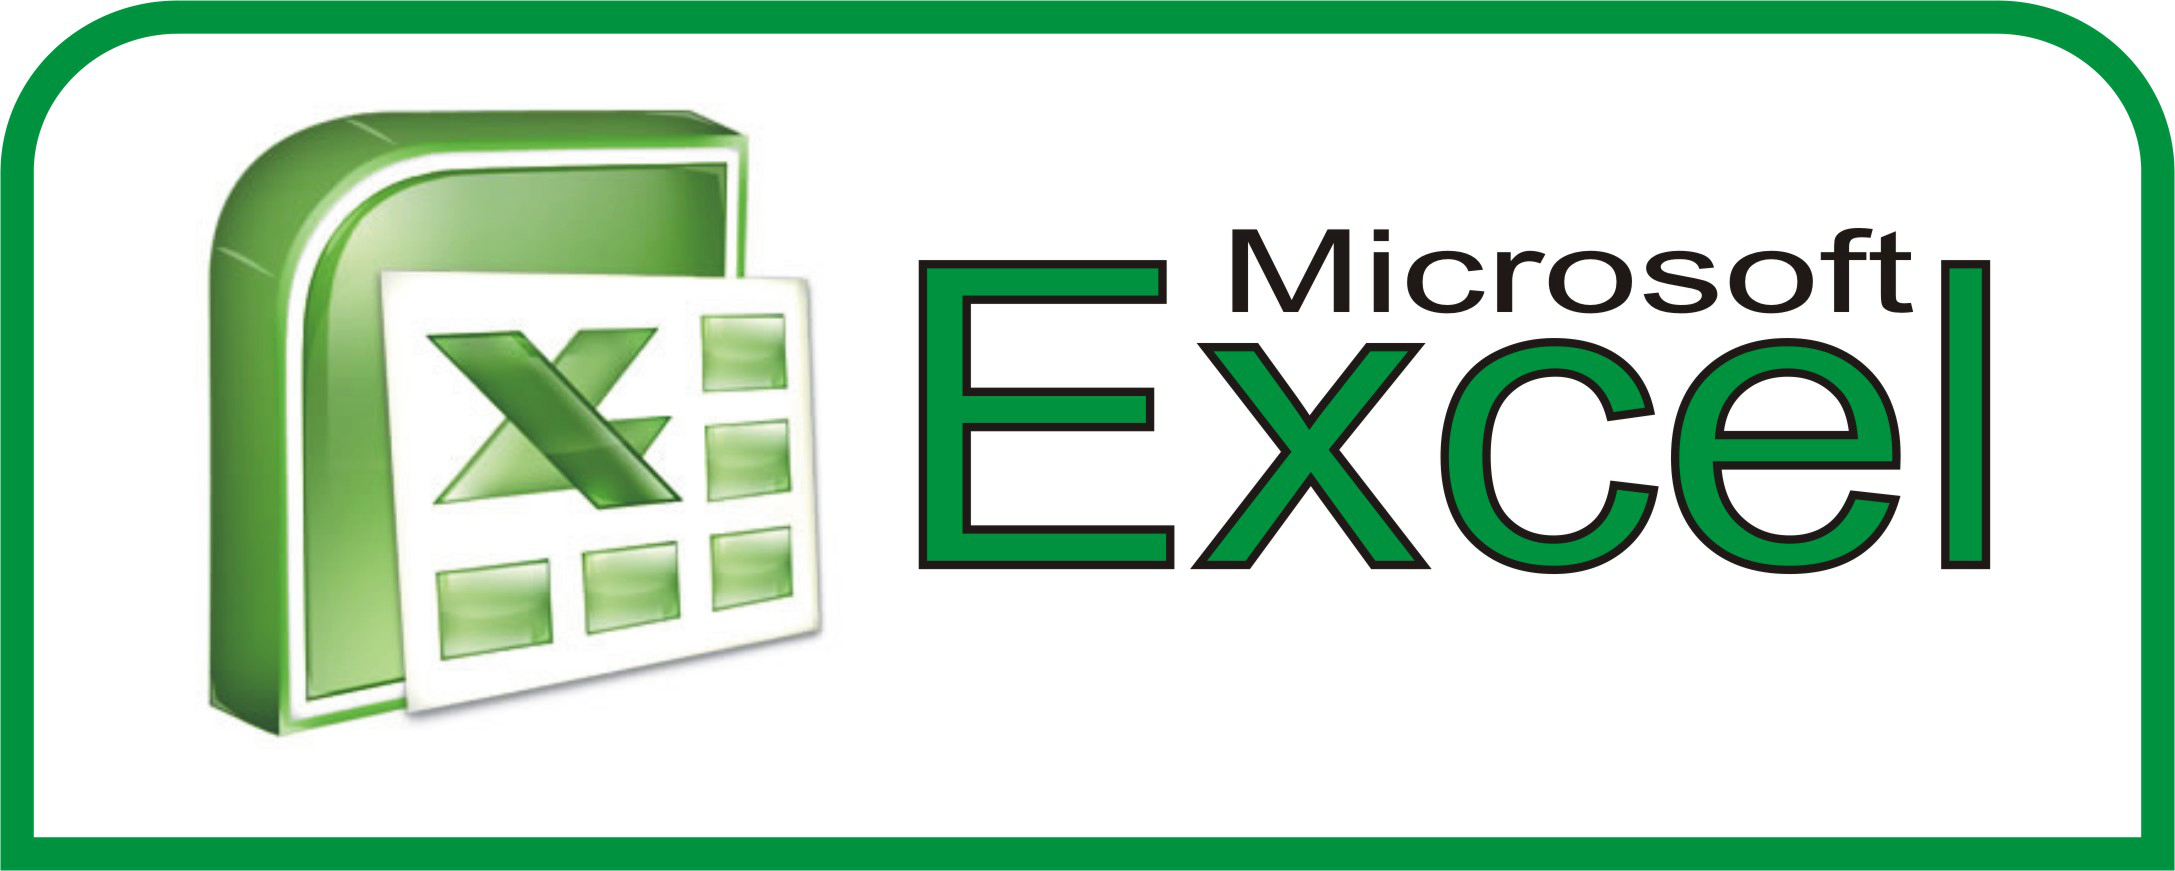 Ediblewildsus  Pretty  Excel Shortcuts You Probably Didnt Know About  Techdissected With Likable Locking Row In Excel Besides Formula On Excel Furthermore How To Create Bar Graphs In Excel With Awesome Free  Calendar Excel Also Exp Function In Excel In Addition Vba Mac Excel And If Or Formula Excel As Well As Excel Is Locked For Editing Additionally Excel Federal Credit Union Norcross Ga From Techdissectedcom With Ediblewildsus  Likable  Excel Shortcuts You Probably Didnt Know About  Techdissected With Awesome Locking Row In Excel Besides Formula On Excel Furthermore How To Create Bar Graphs In Excel And Pretty Free  Calendar Excel Also Exp Function In Excel In Addition Vba Mac Excel From Techdissectedcom